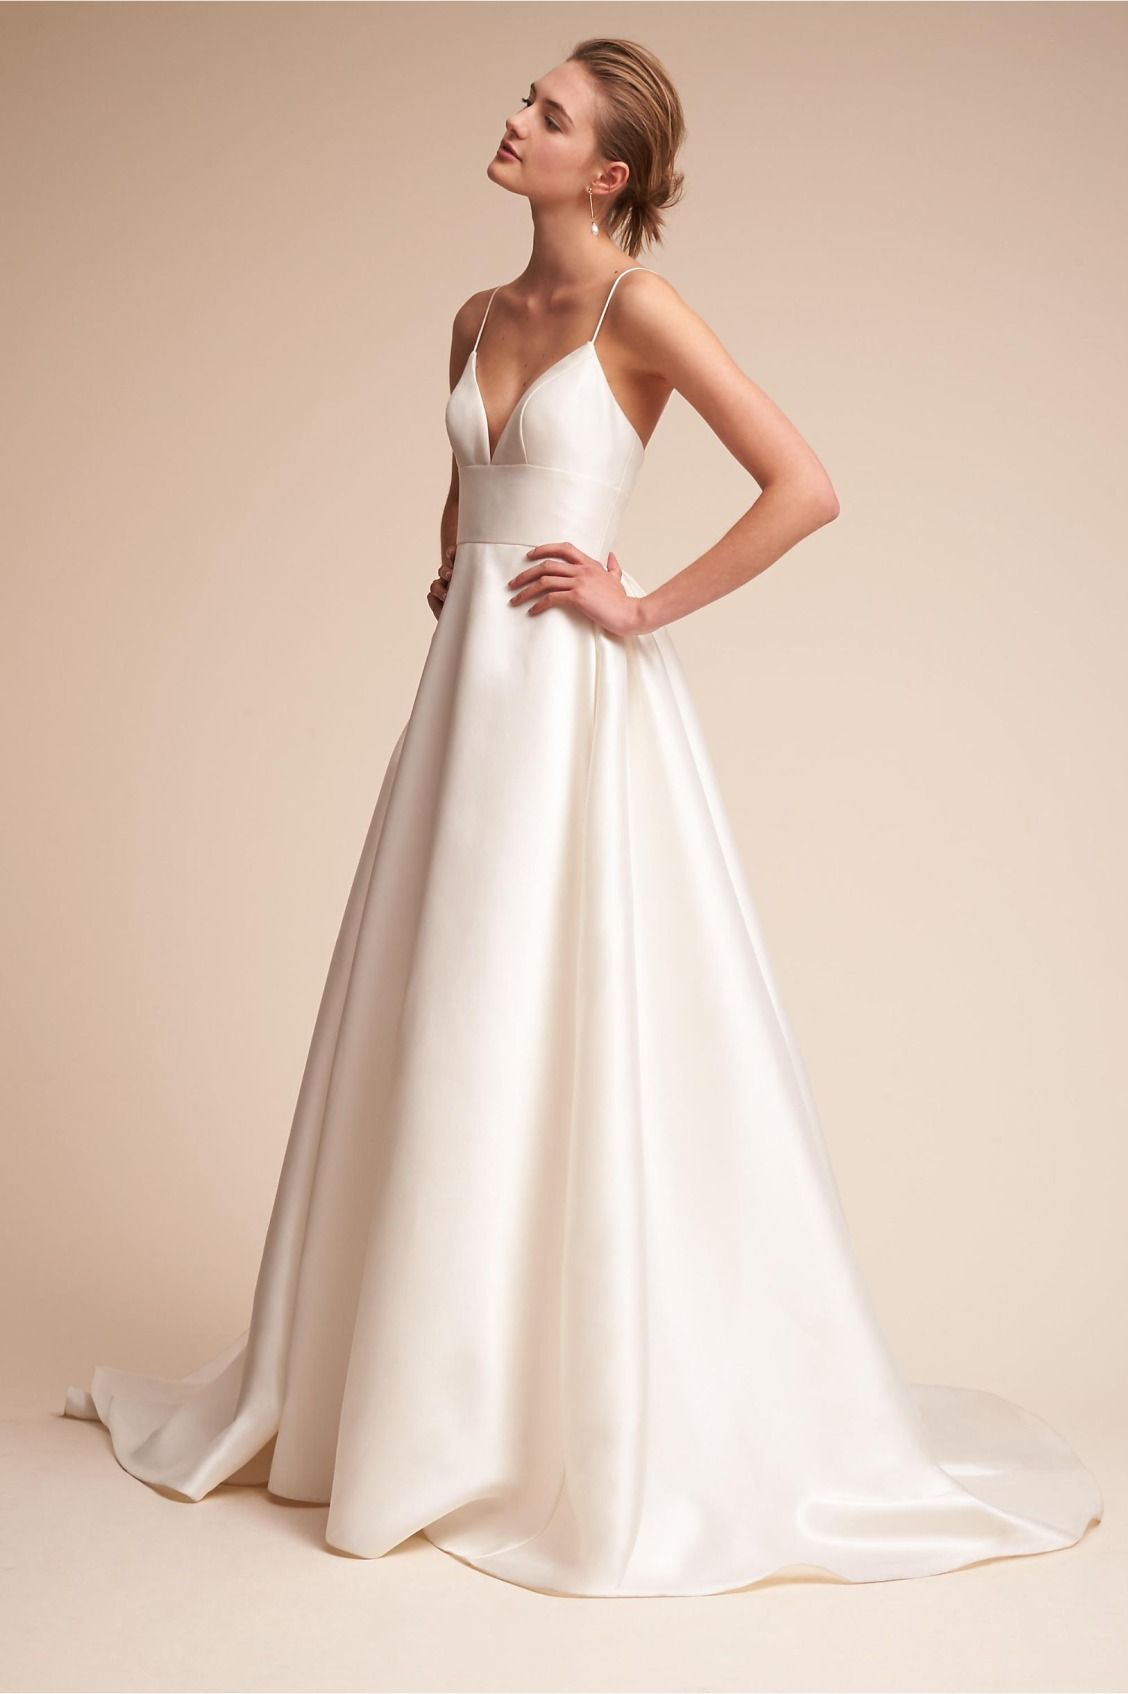 chic and elegant  Opaline Ballgown from BHLDN  Brautkleid